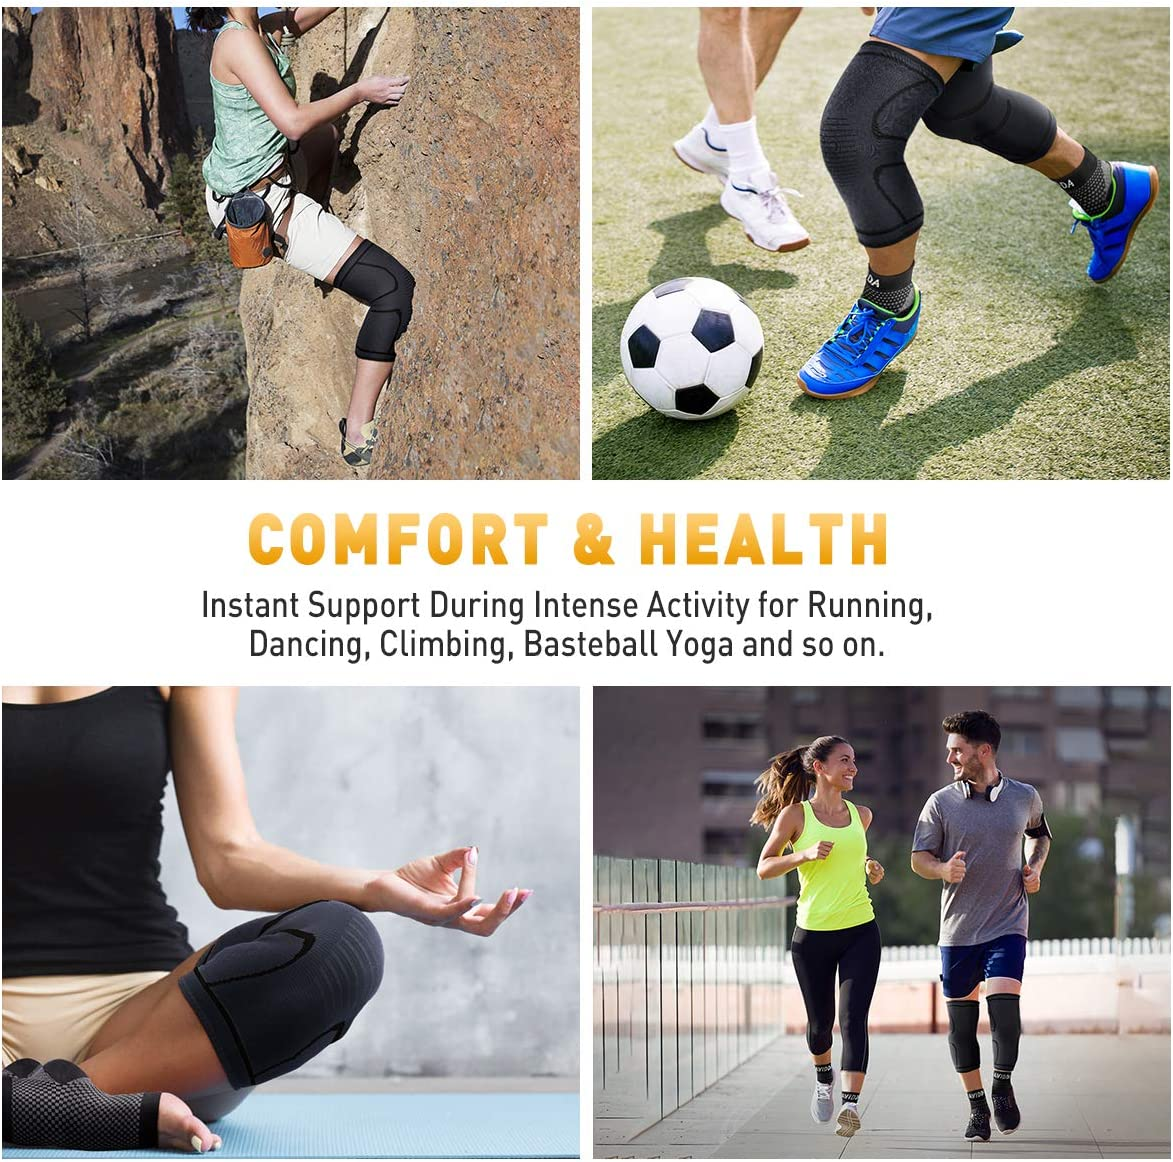 Running Injury Recovery Football Gold S Copper Compression Knee Sleeve for Joint Pain Relief Squats Arthritis AVIDDA Knee Brace Support Pair for Men Women Meniscus Tear Weight Lifting